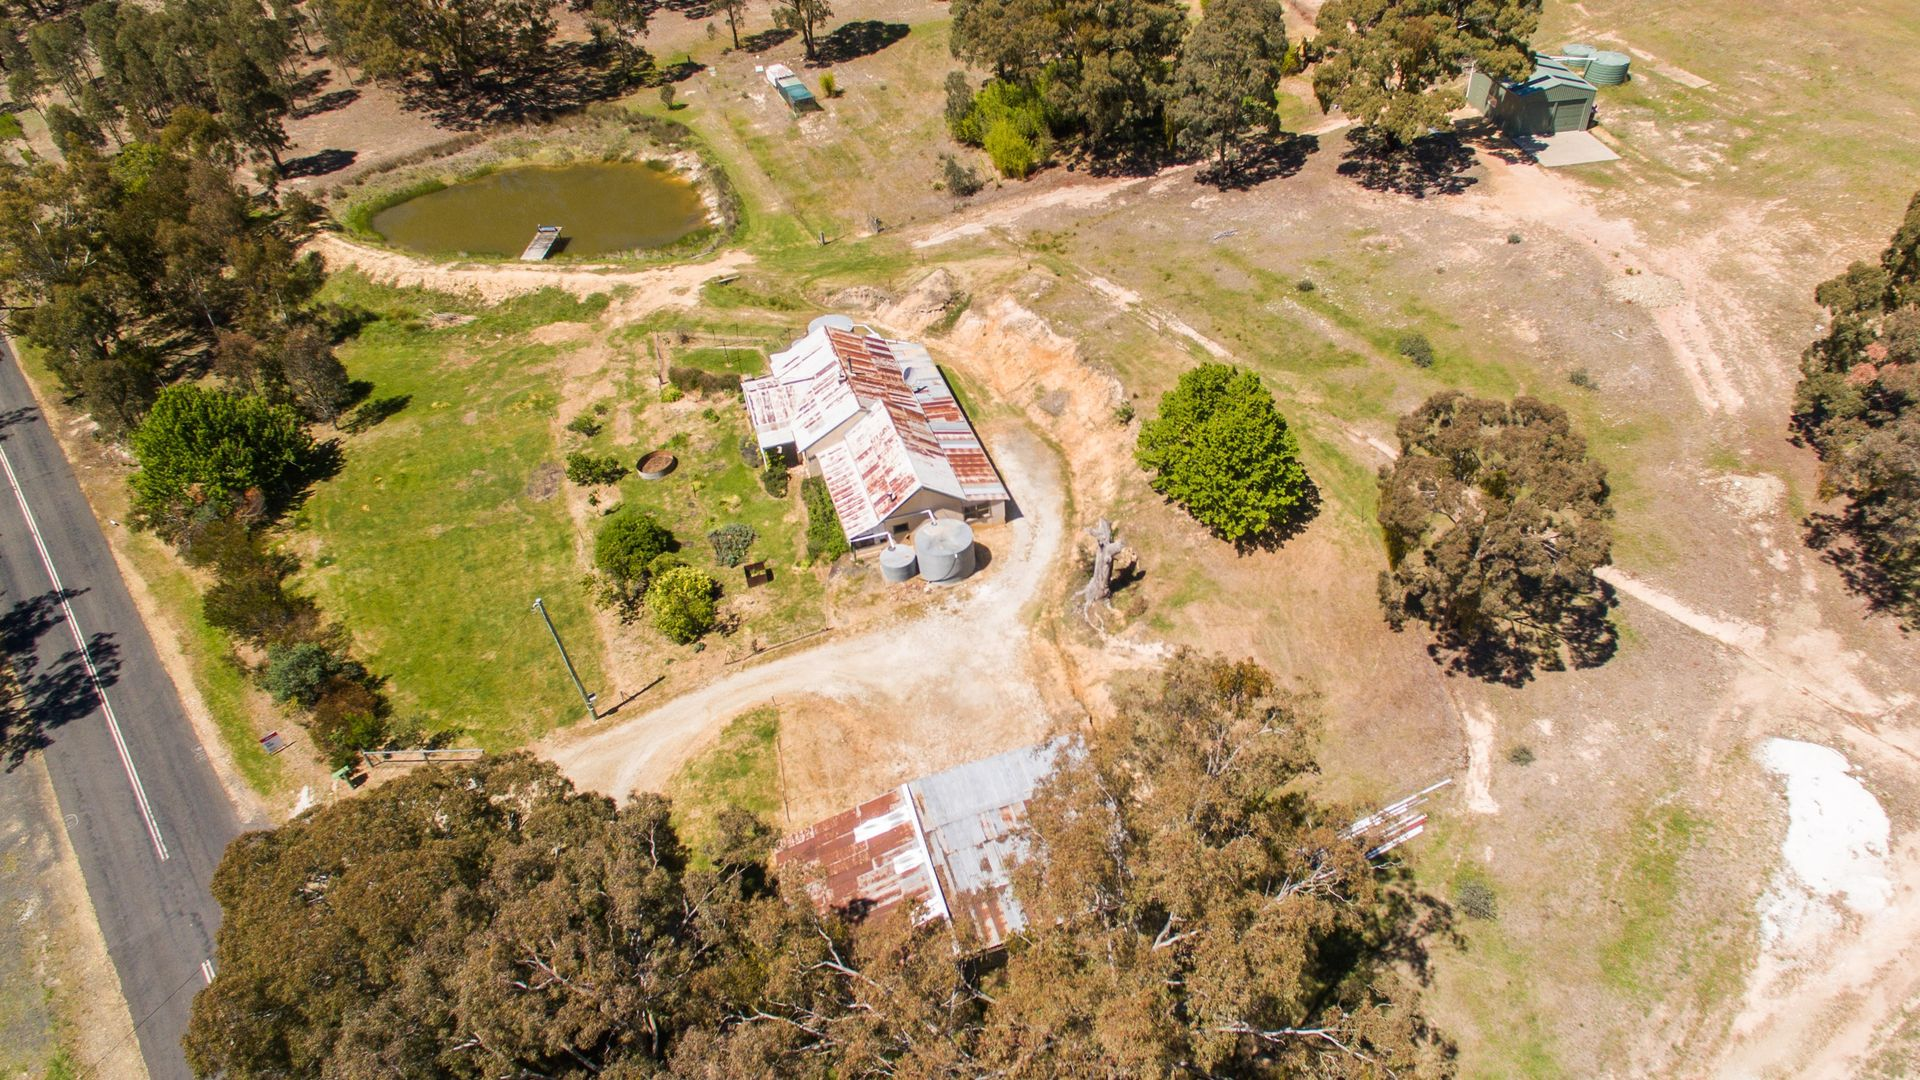 123 HOBBYS YARDS ROAD, Trunkey Creek NSW 2795, Image 1